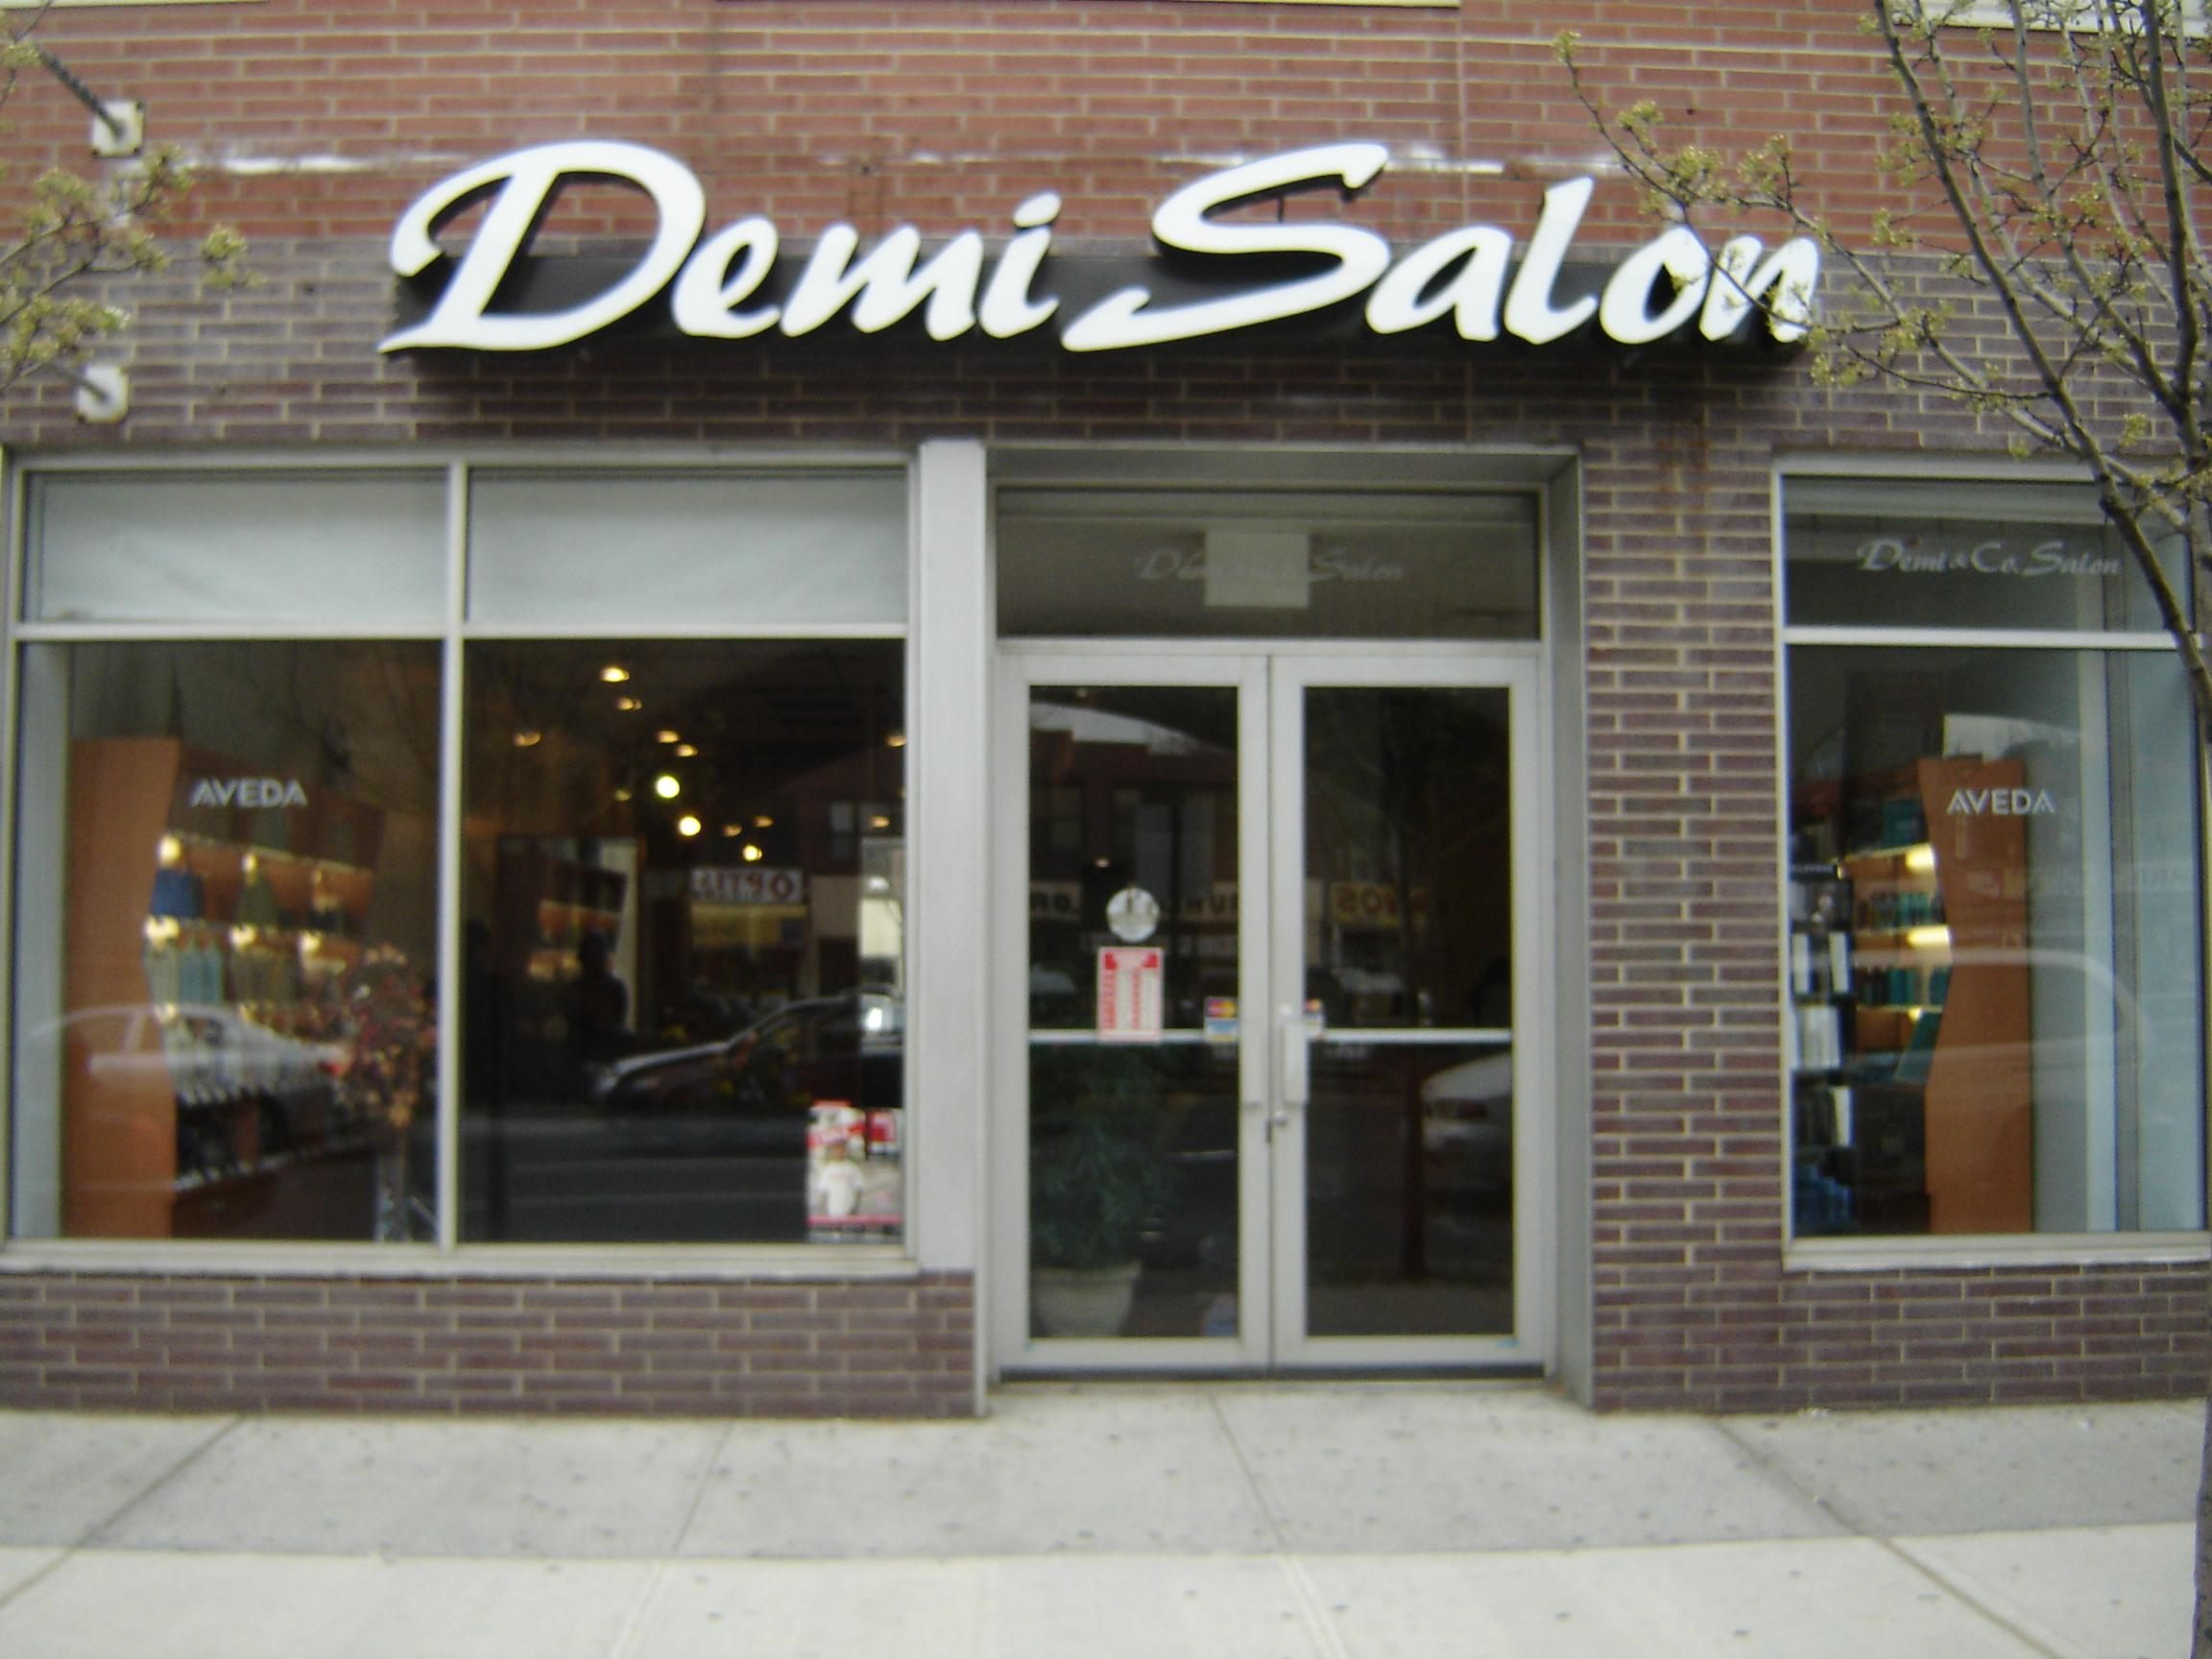 Demi Salon